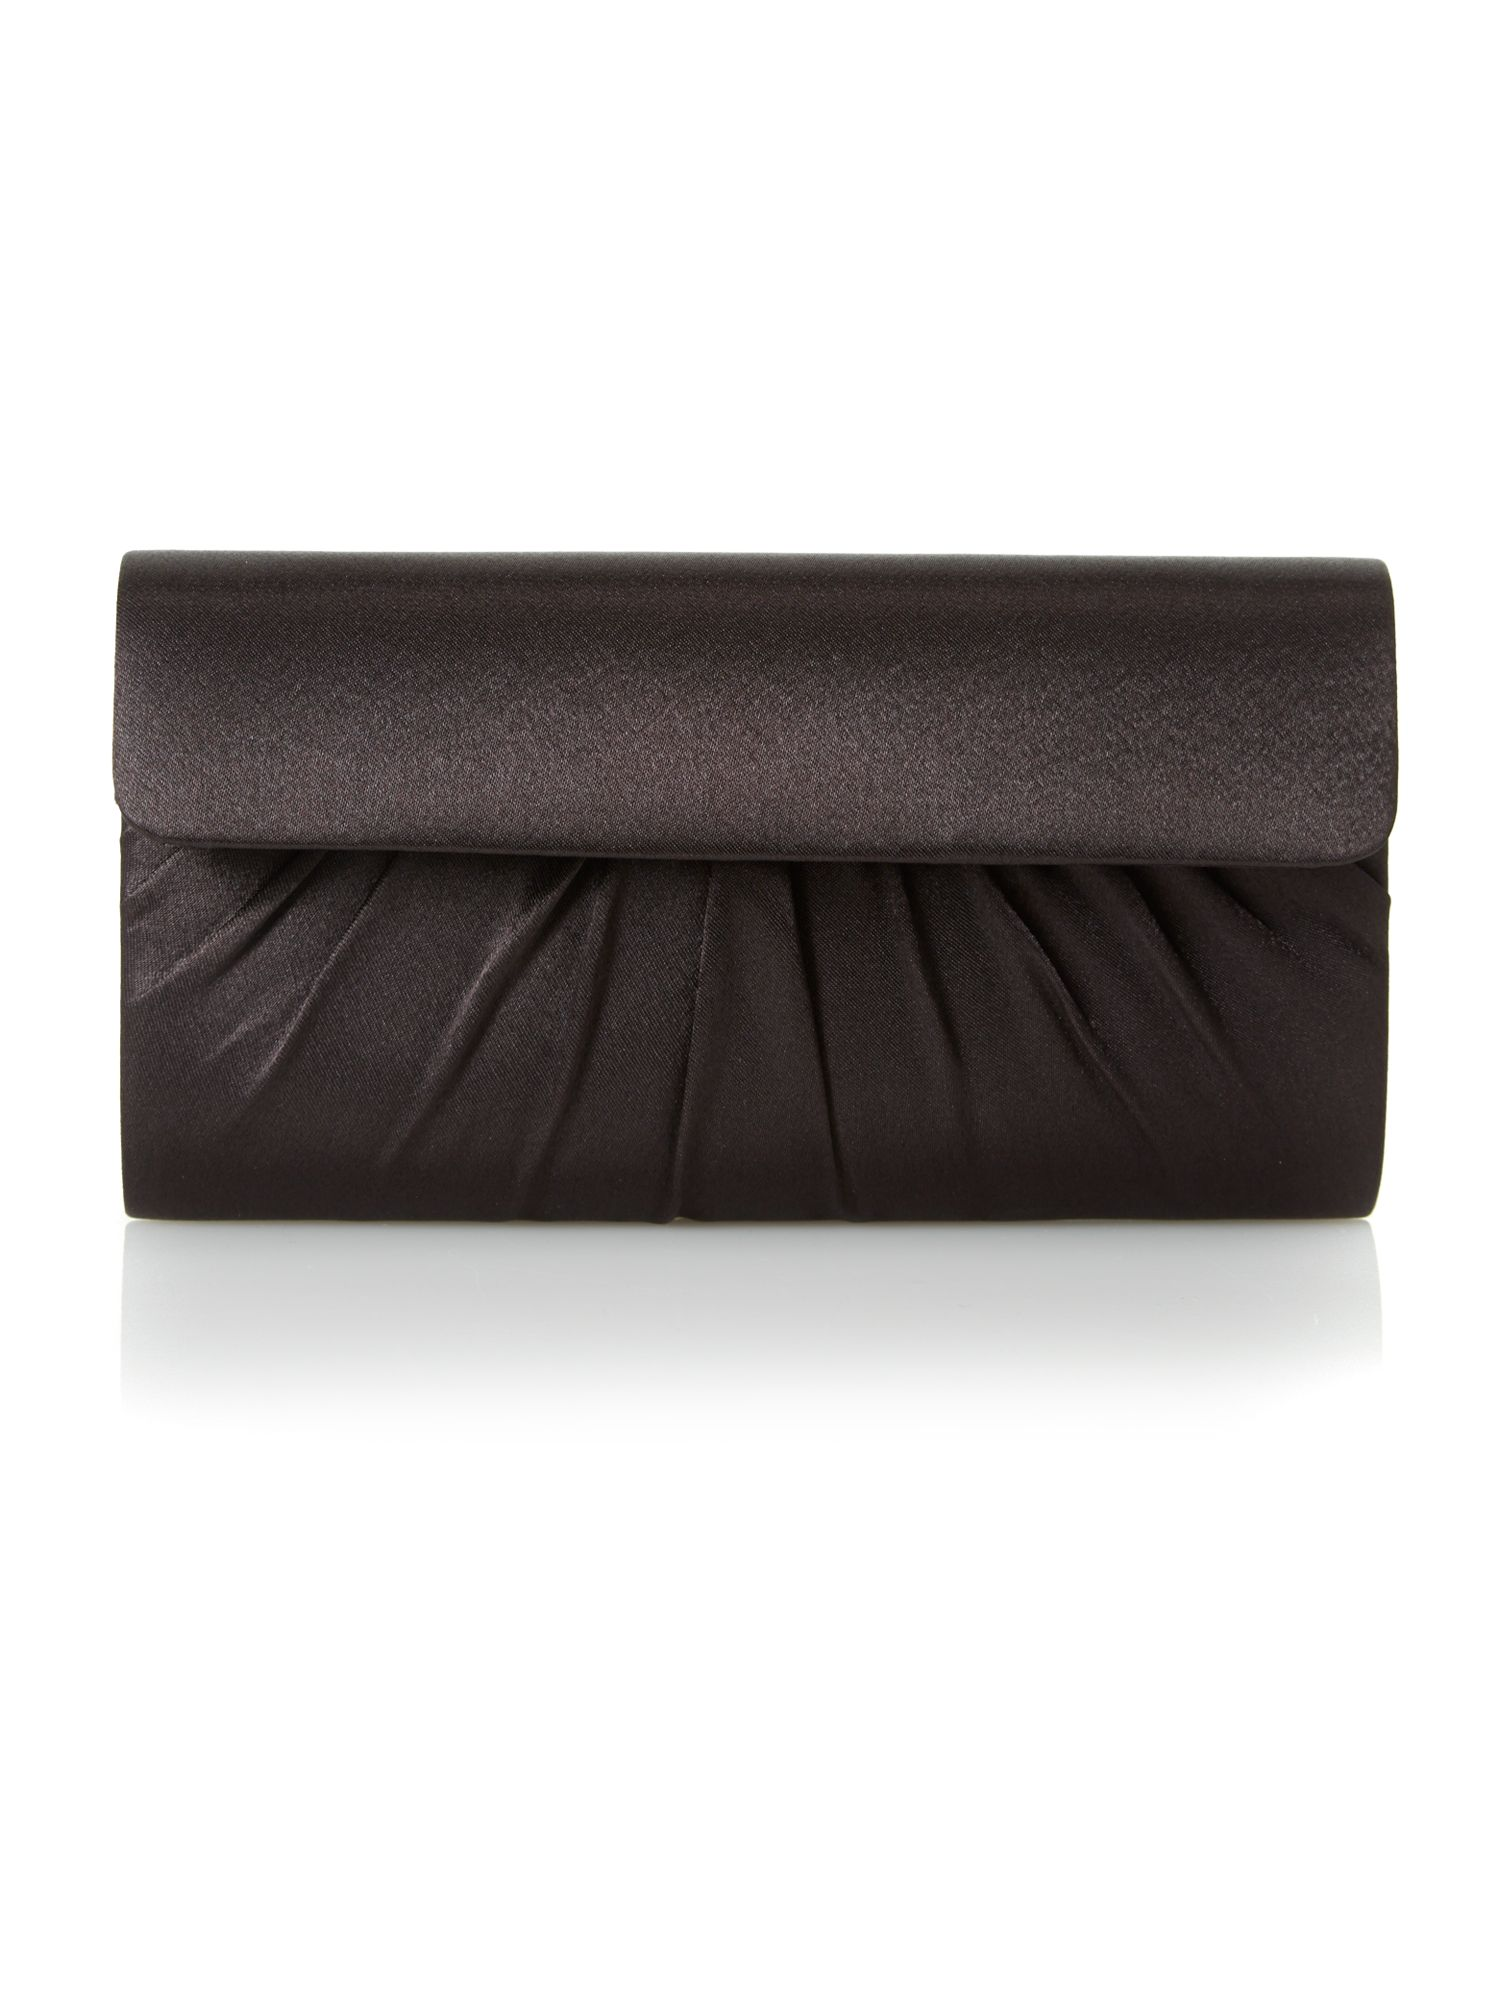 Brown satin clutch bag